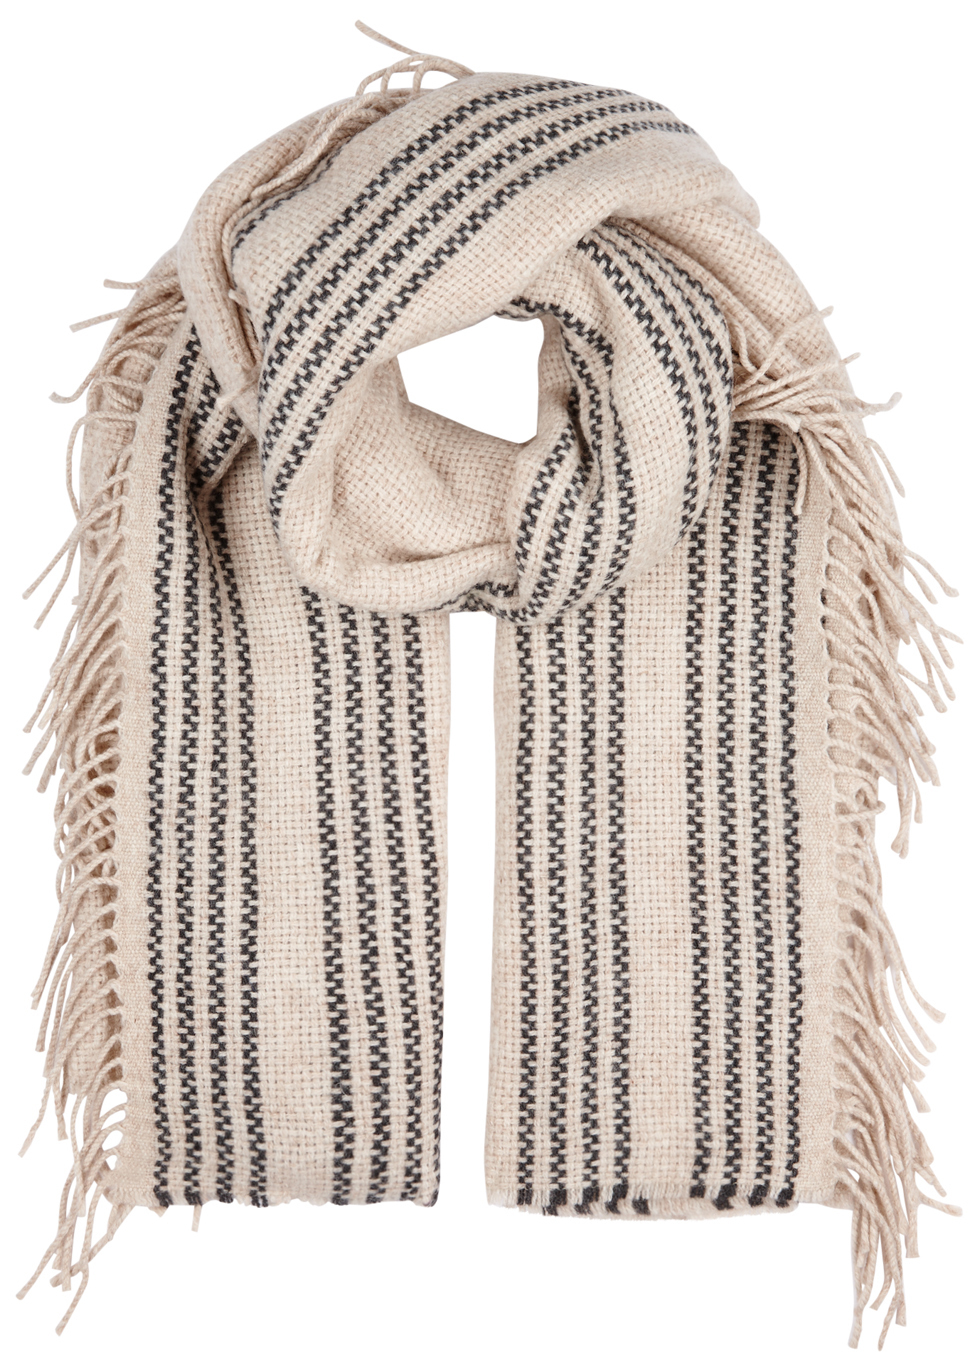 Stone Fringed Wool Blend Scarf - predominant colour: ivory/cream; secondary colour: black; occasions: casual; type of pattern: light; style: regular; size: standard; material: knits; pattern: vertical stripes; multicoloured: multicoloured; season: a/w 2016; wardrobe: highlight